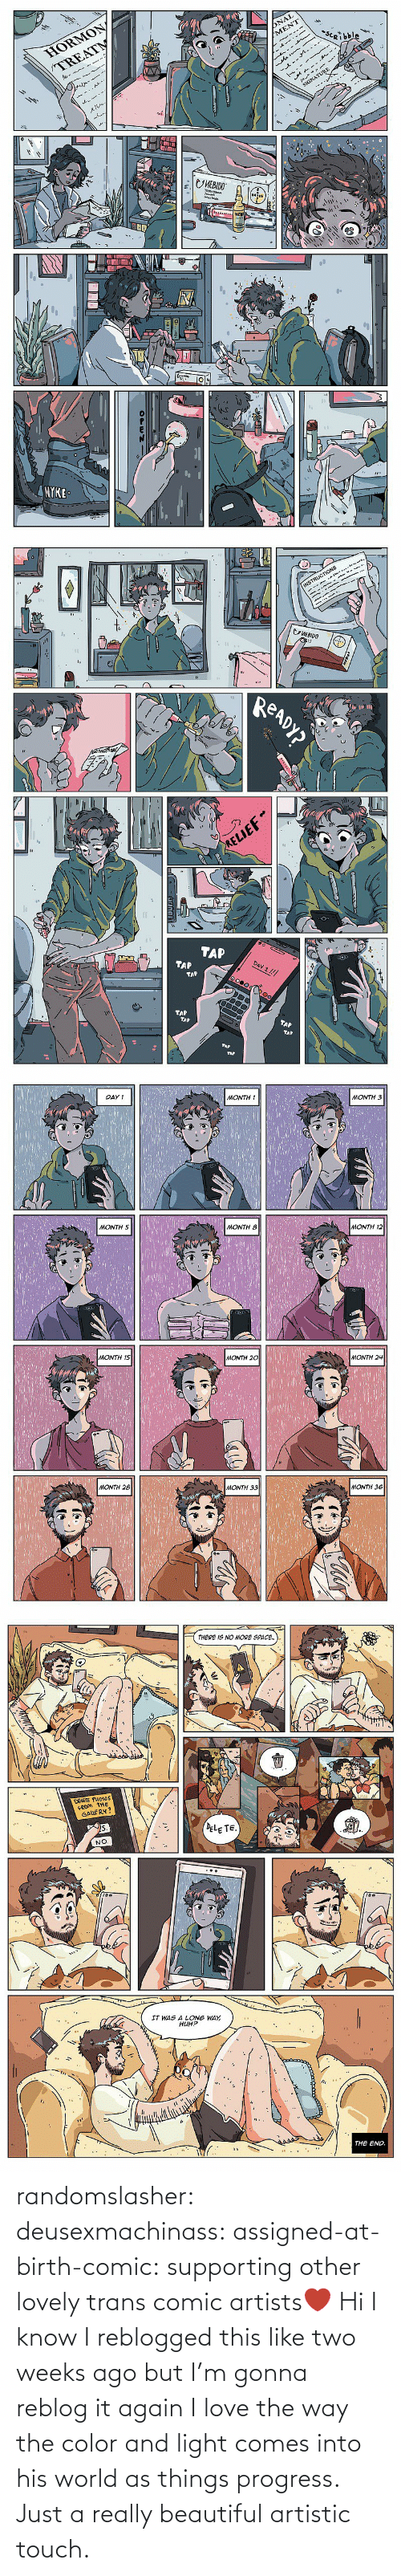 beautiful: randomslasher: deusexmachinass:  assigned-at-birth-comic: supporting other lovely trans comic artists❤  Hi I know I reblogged this like two weeks ago but I'm gonna reblog it again  I love the way the color and light comes into his world as things progress. Just a really beautiful artistic touch.